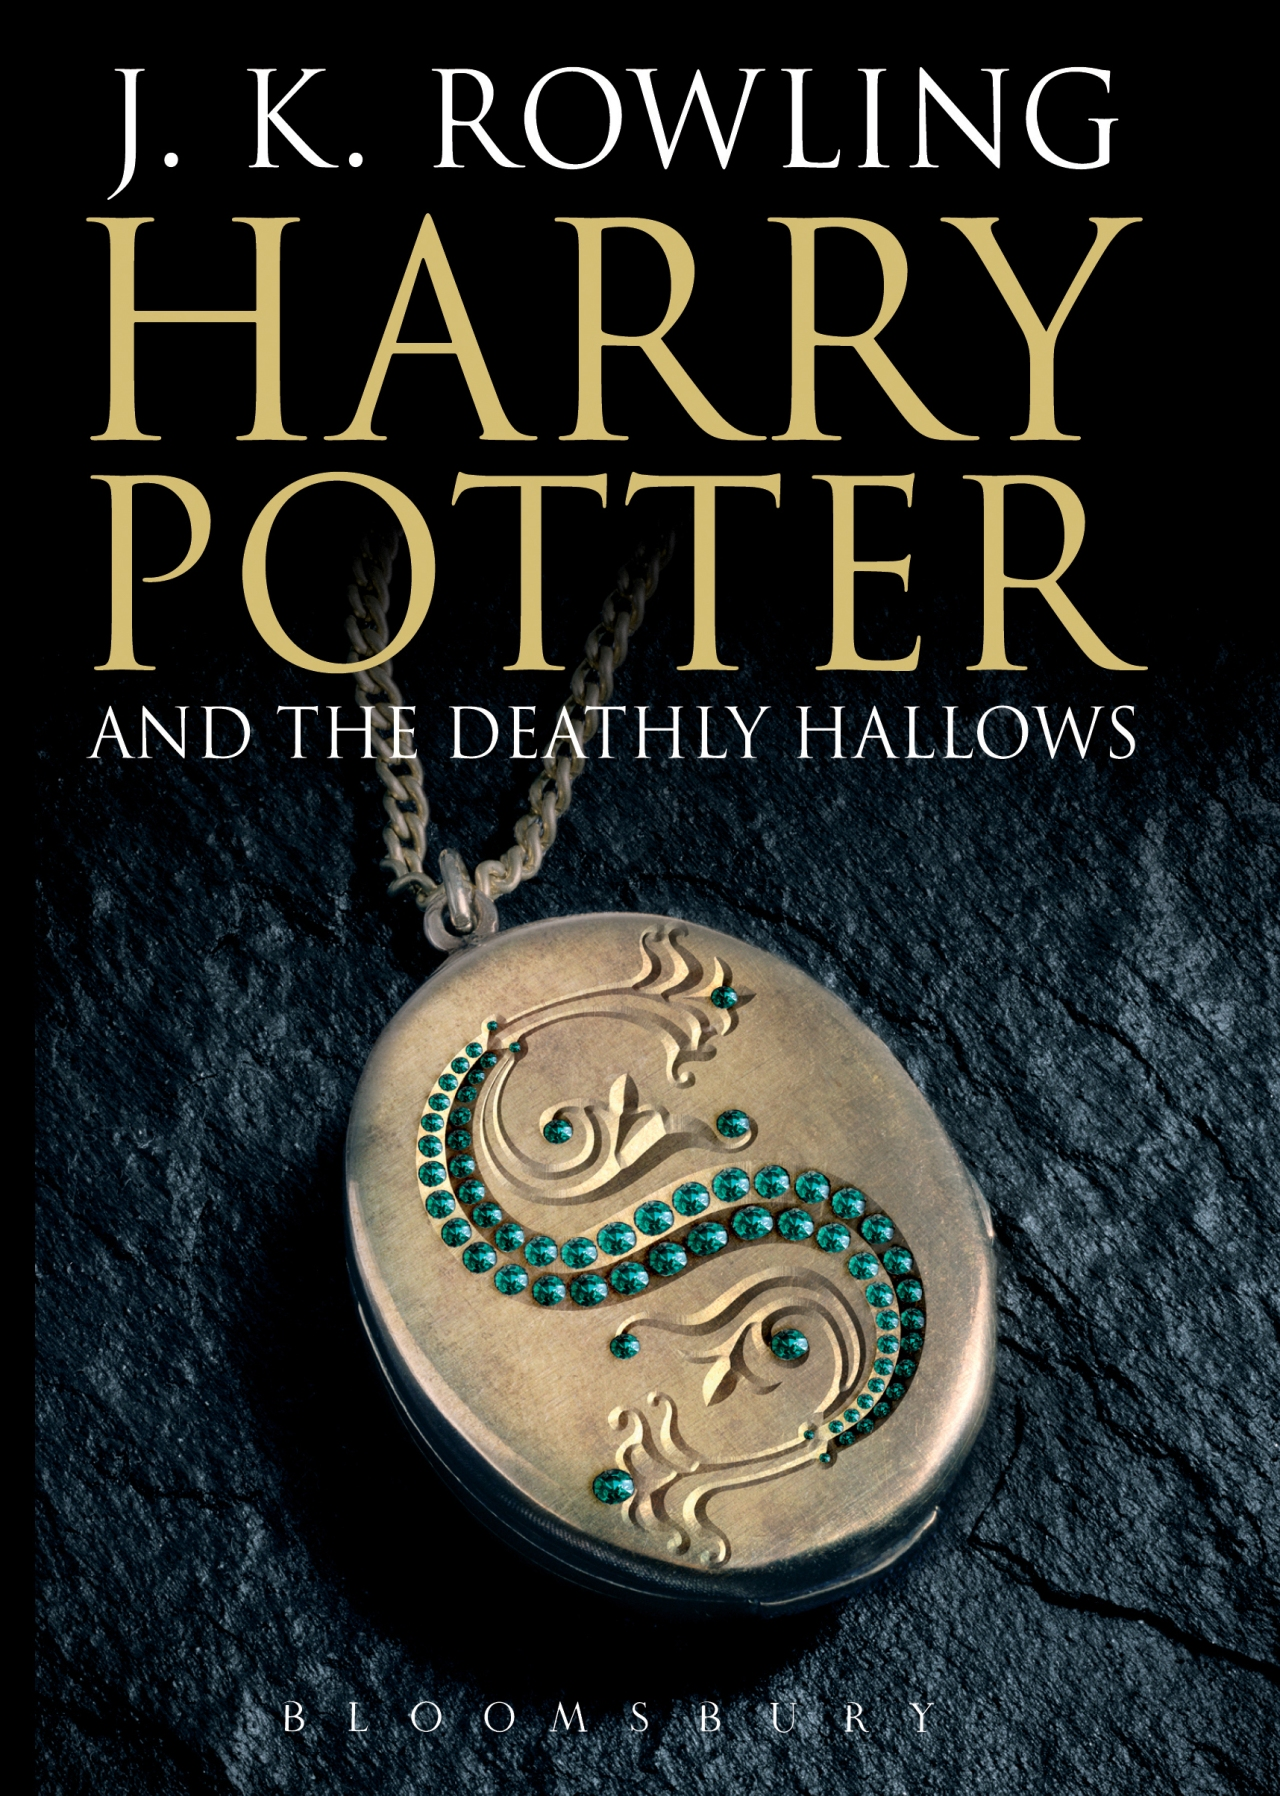 7 - Harry Potter and the Deathly Hallows Adult's Cover